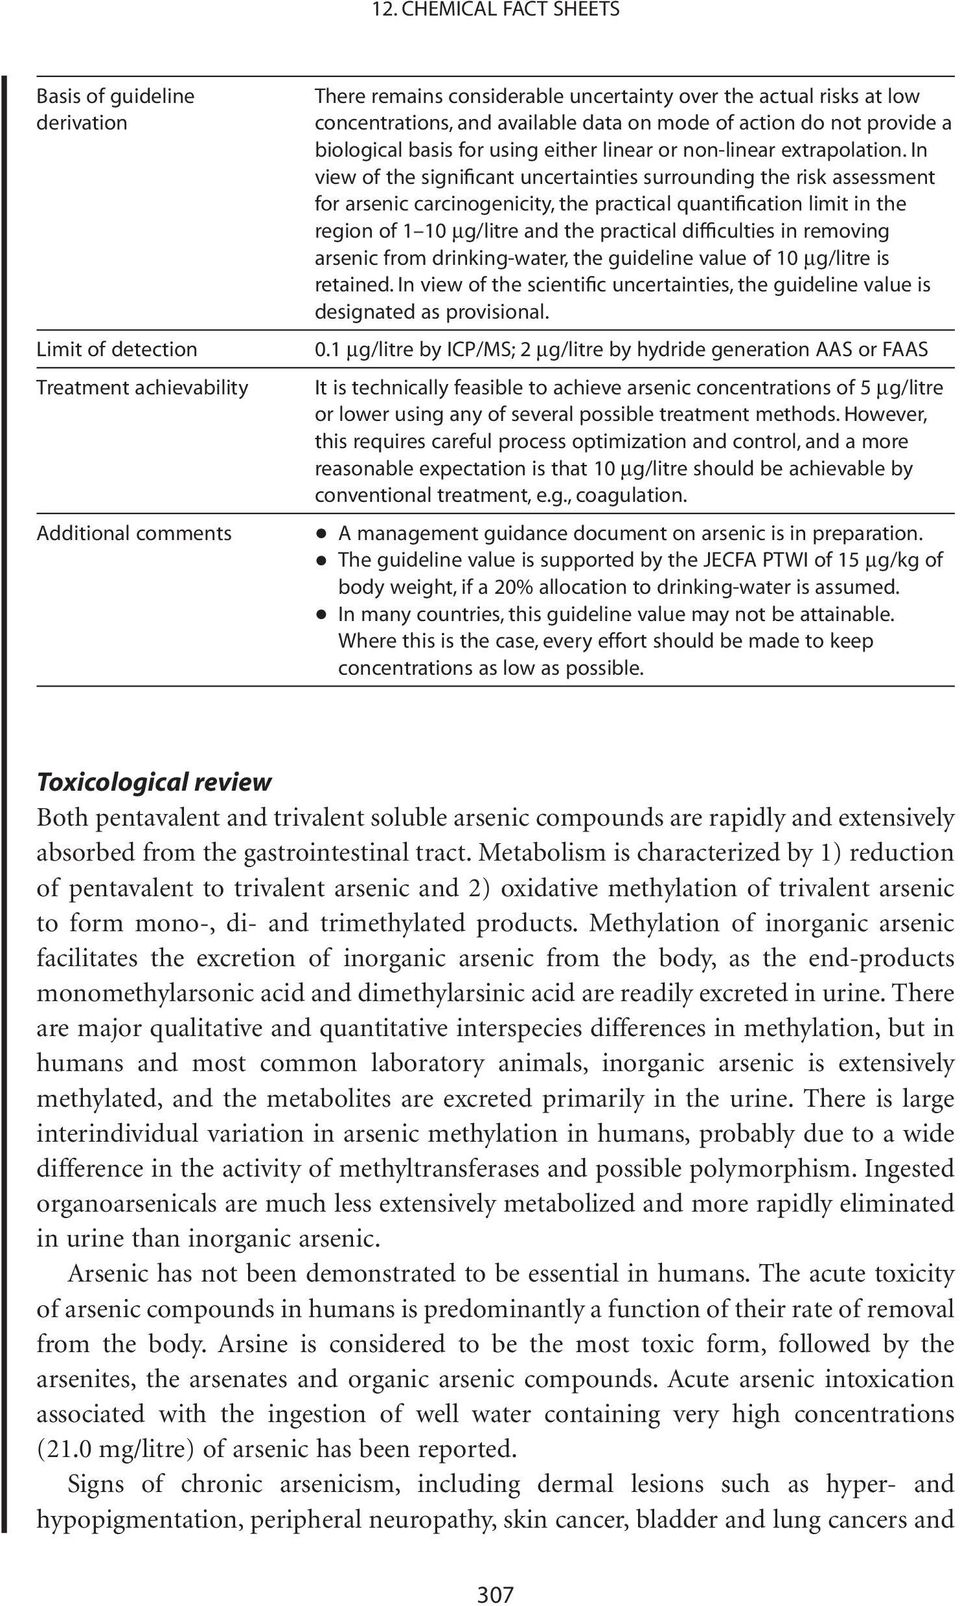 In view of the significant uncertainties surrounding the risk assessment for arsenic carcinogenicity, the practical quantification limit in the region of 1 10 mg/litre and the practical difficulties